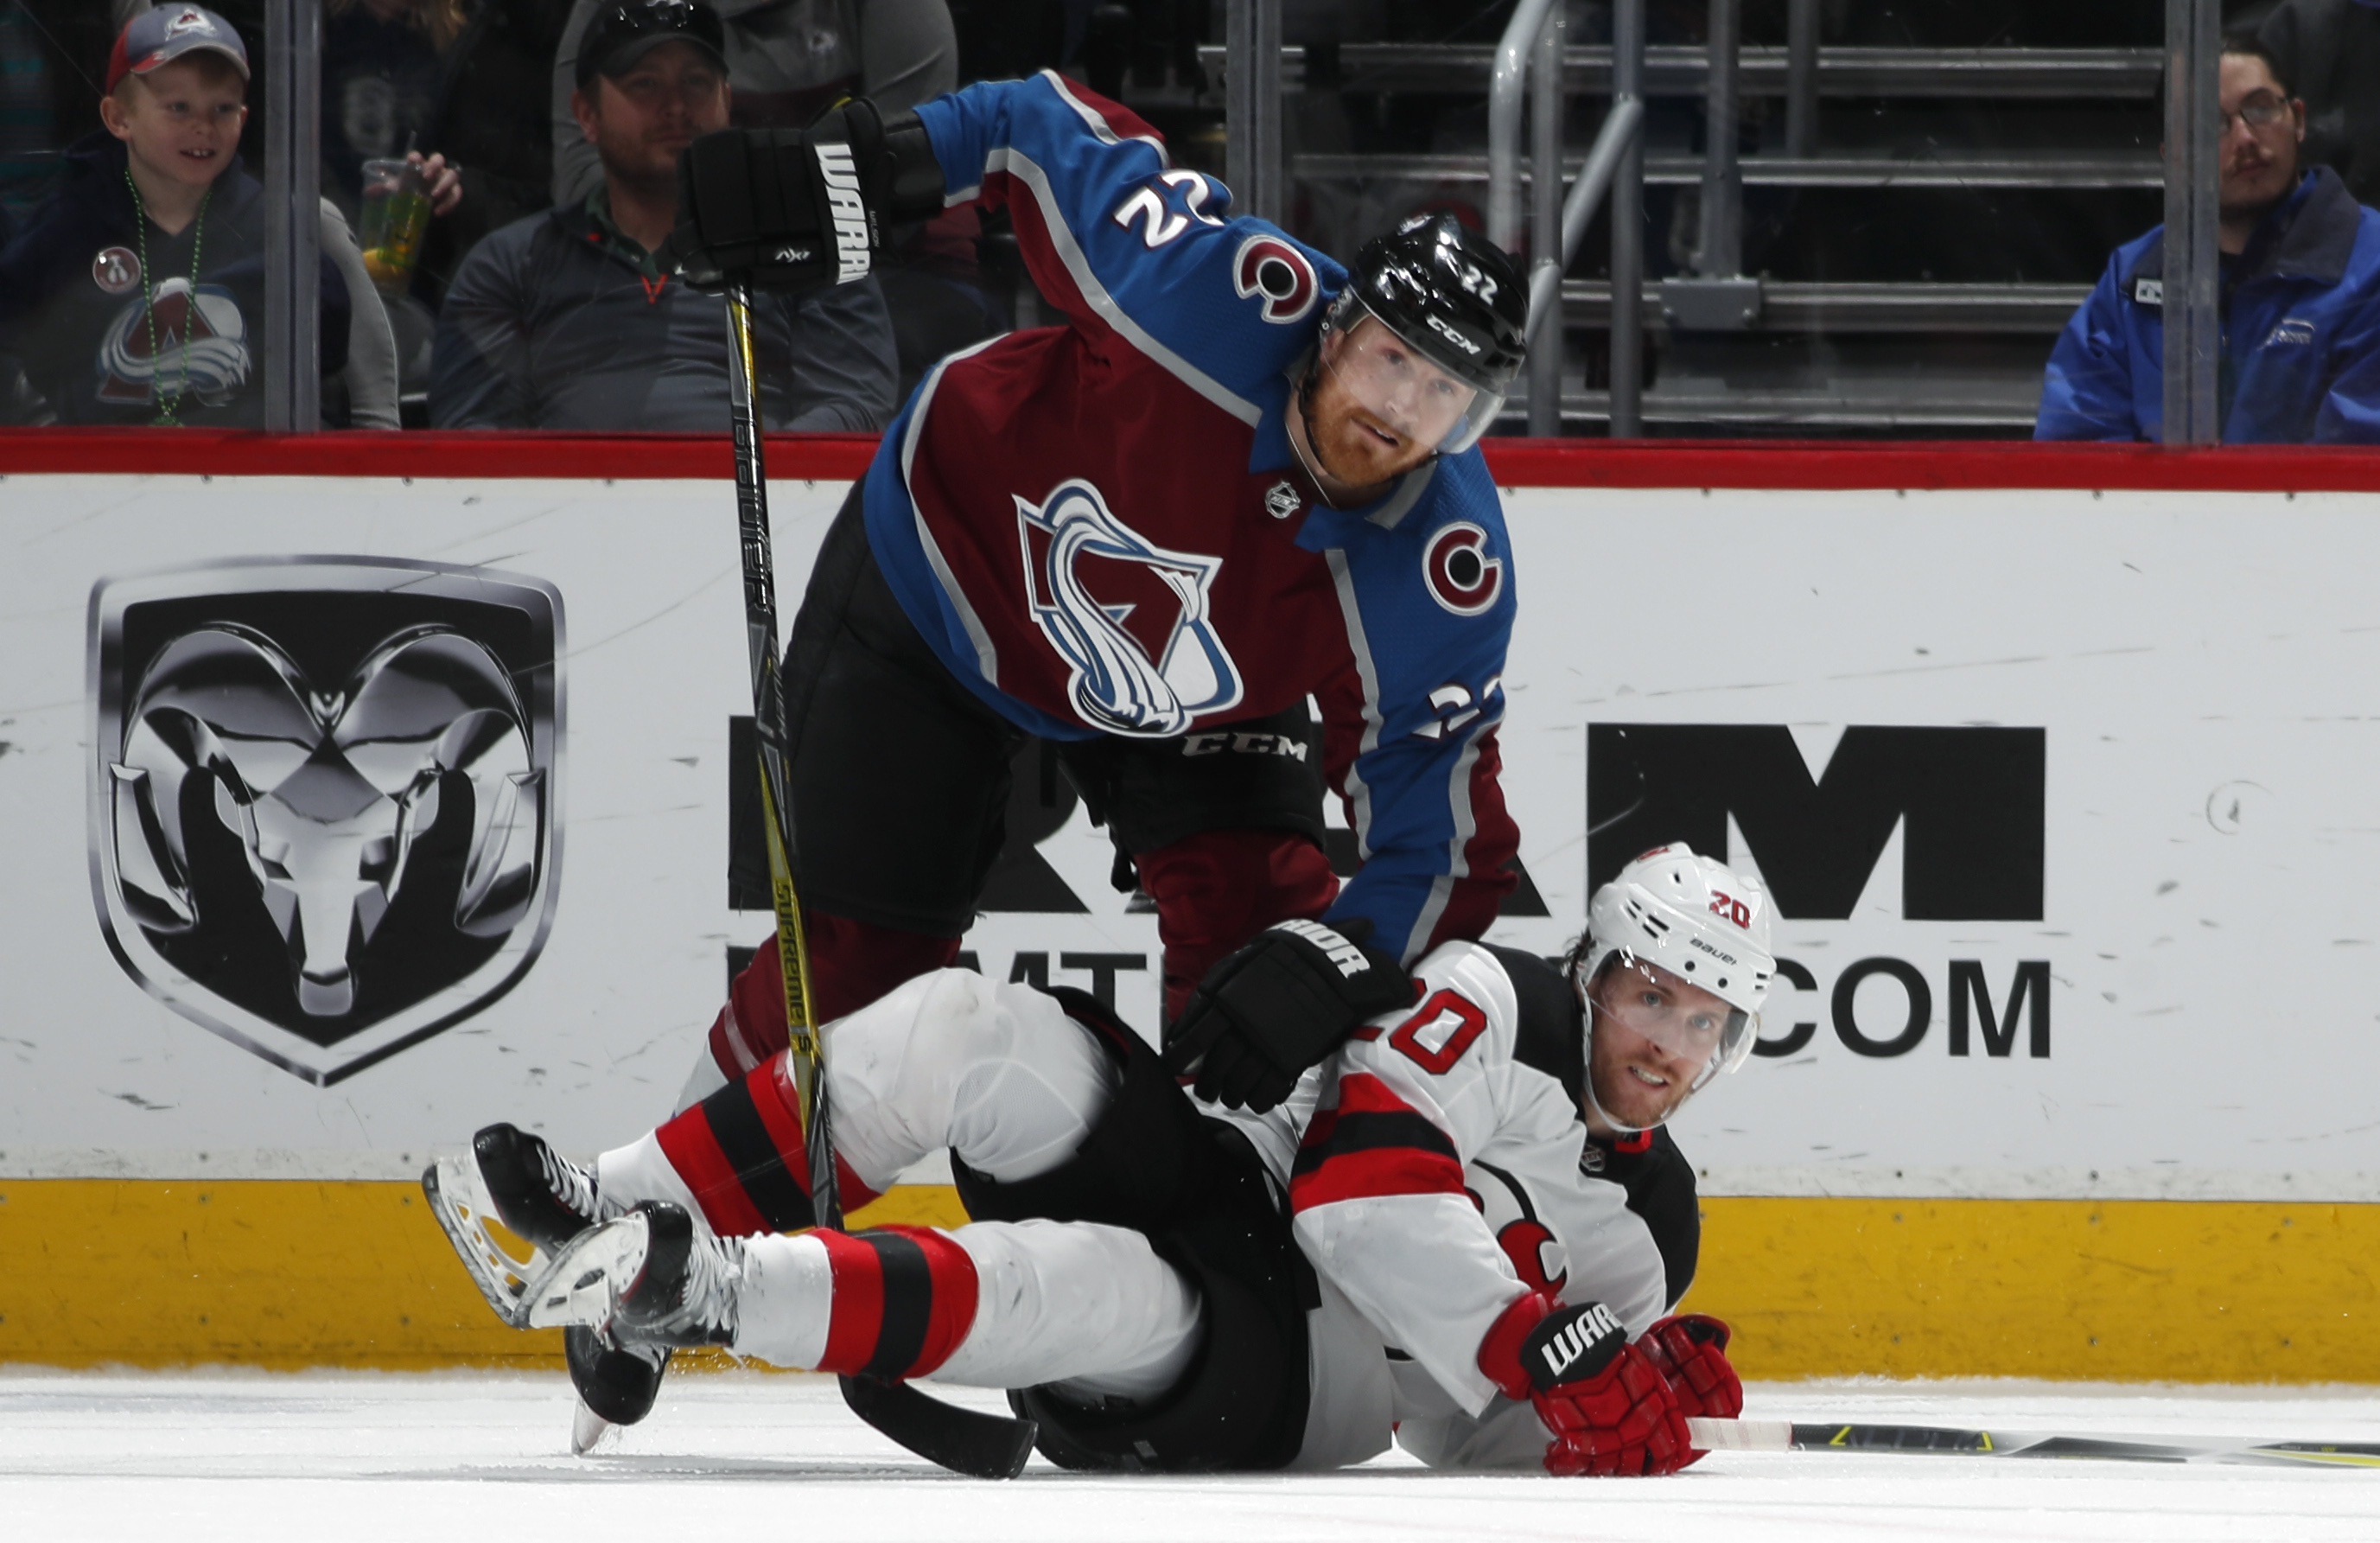 Grubauer helps Avs beat Devils 3-0 - Sentinel Colorado 420902bff